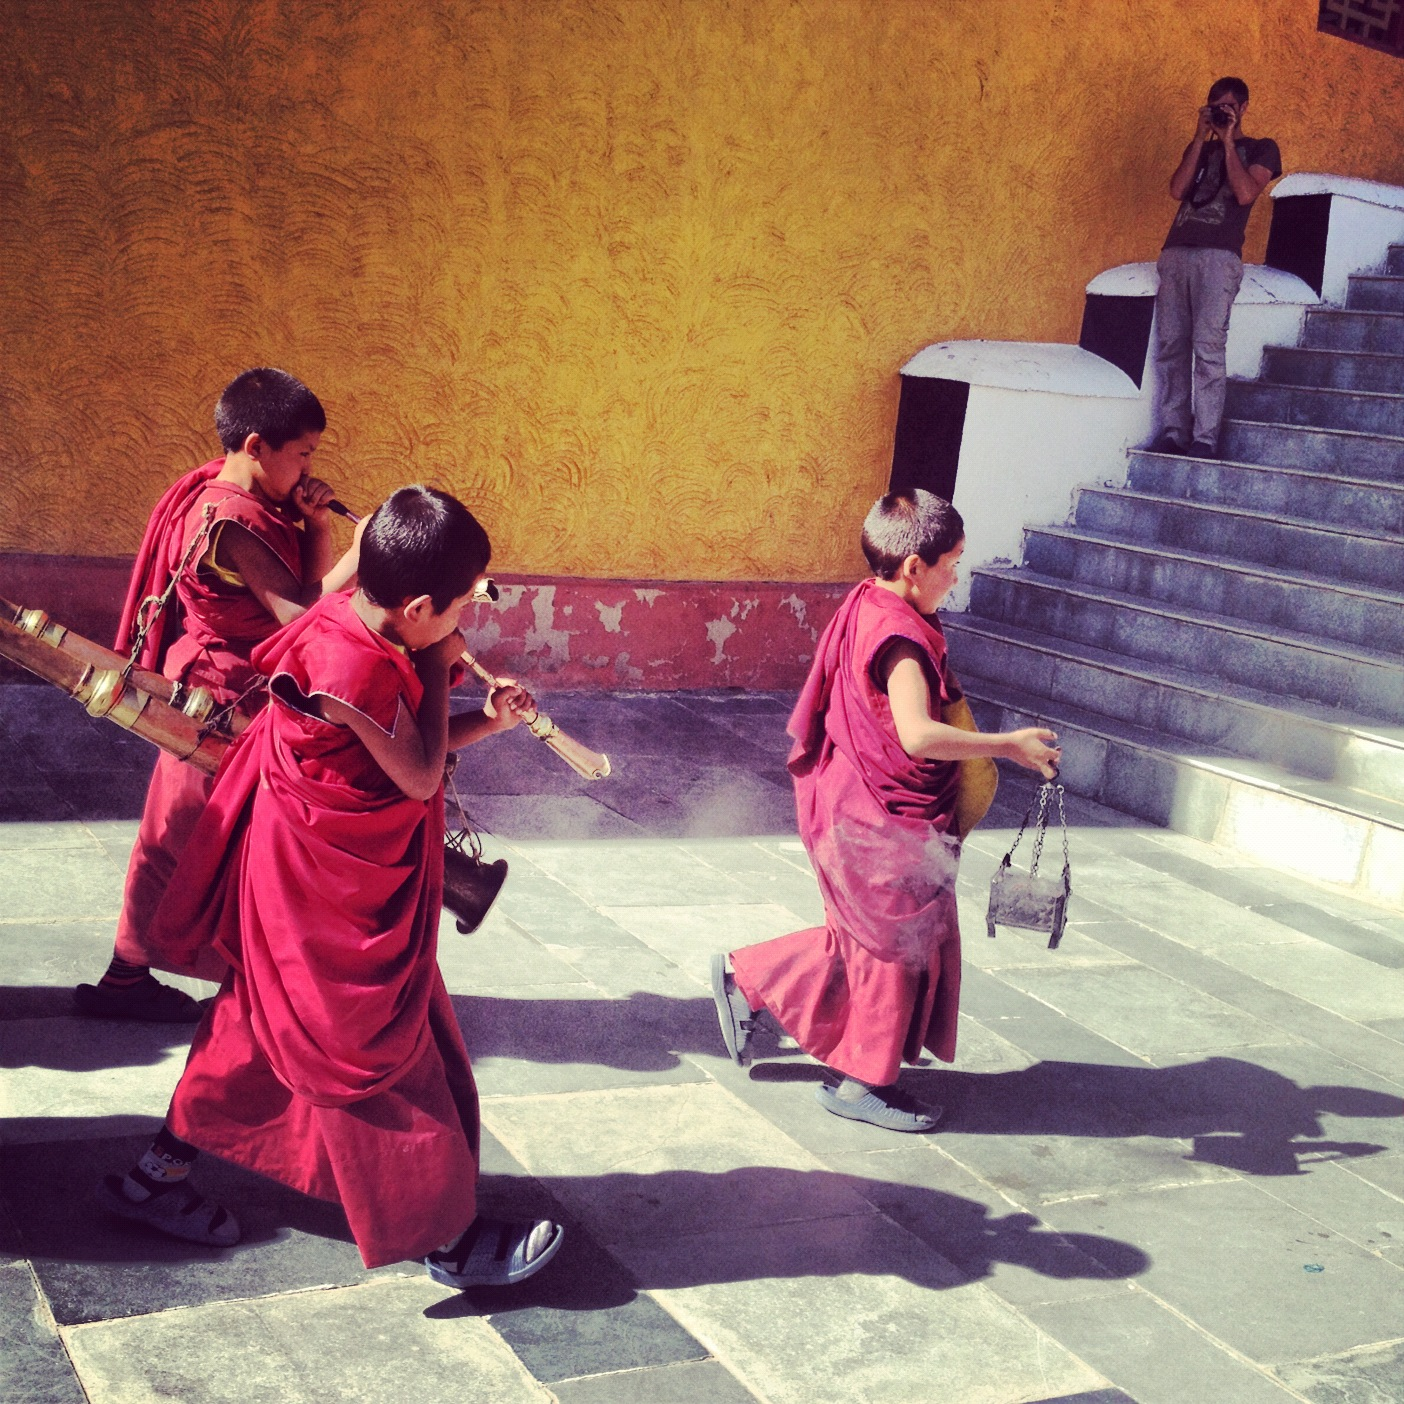 Monks in training at The Thiksey Monastery, in Ladakh, India